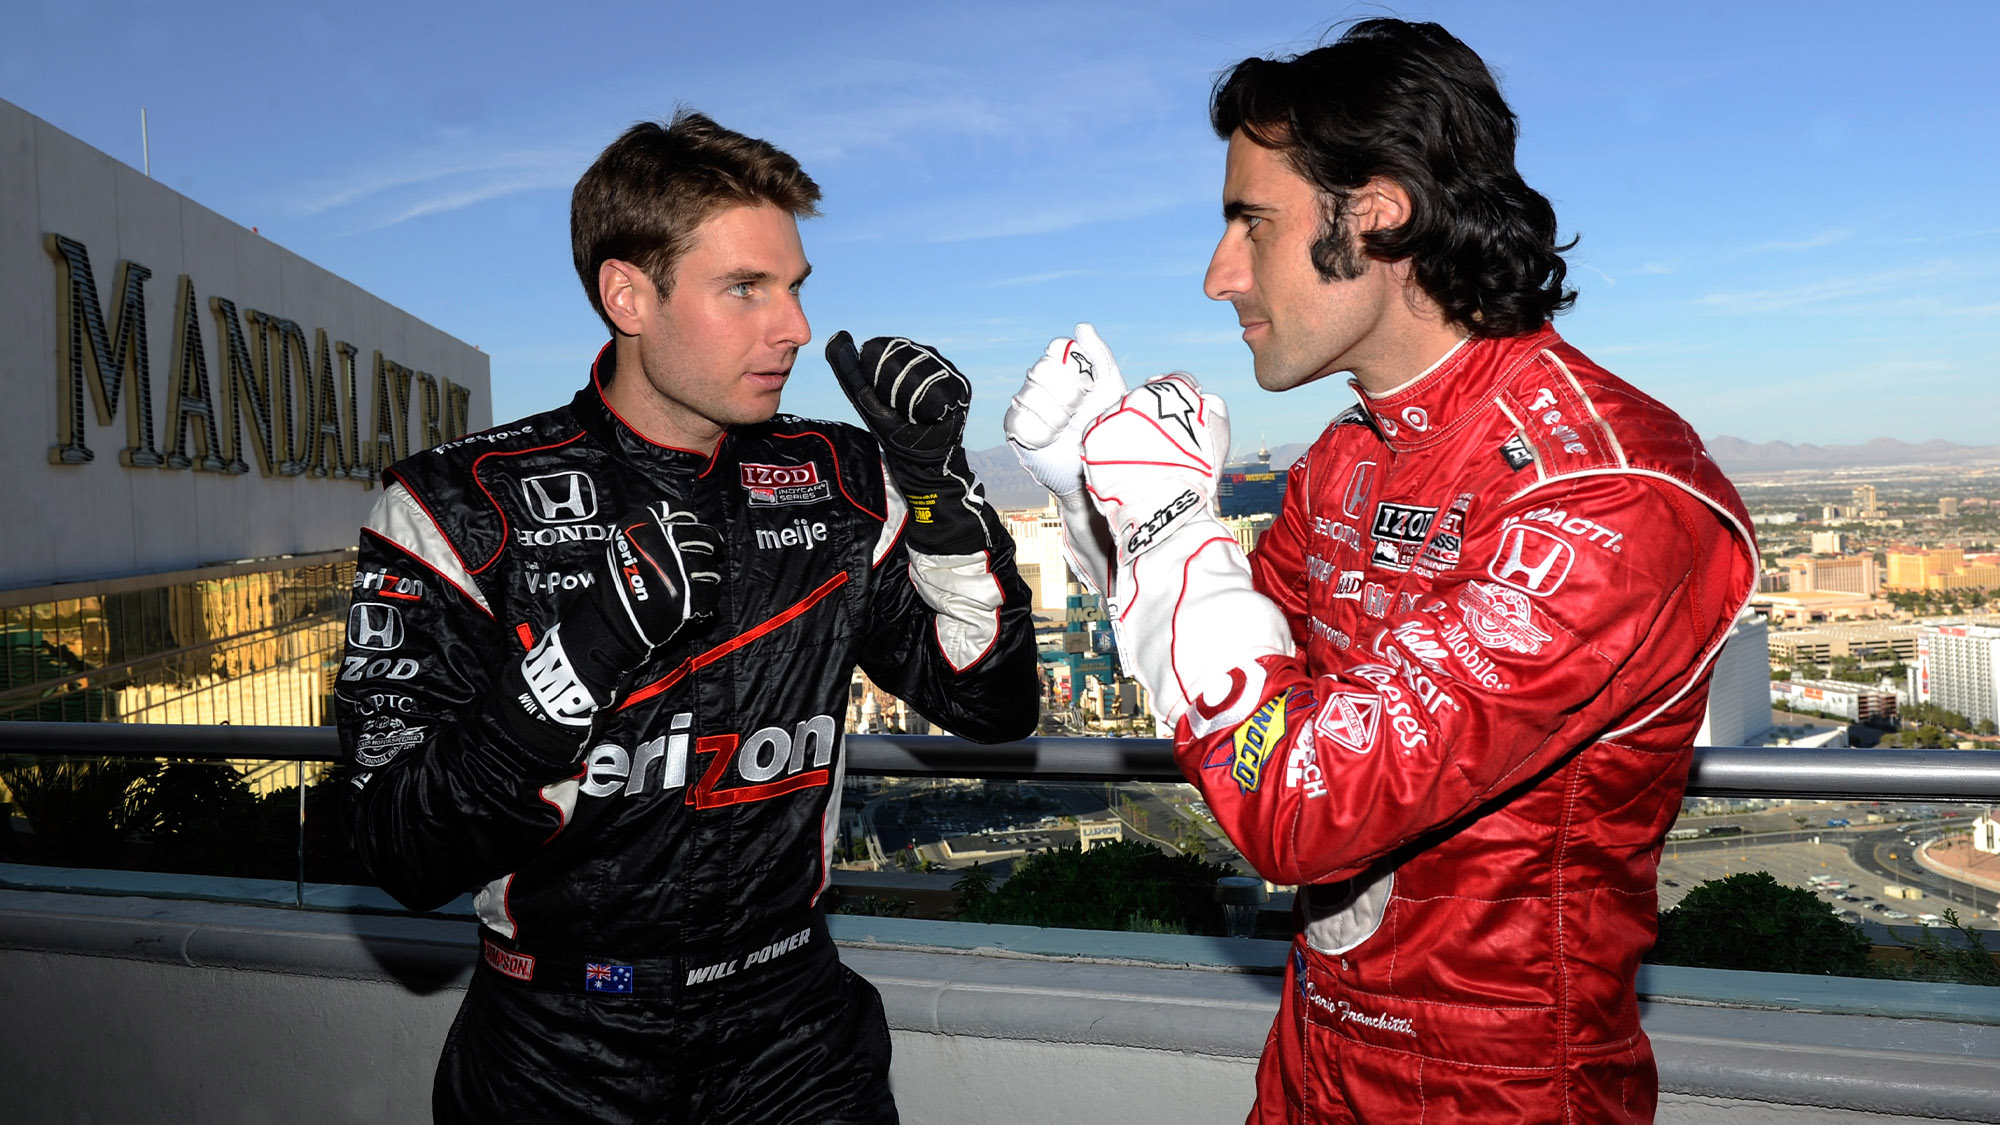 Will Power and Dario Franchitti in a mock fight